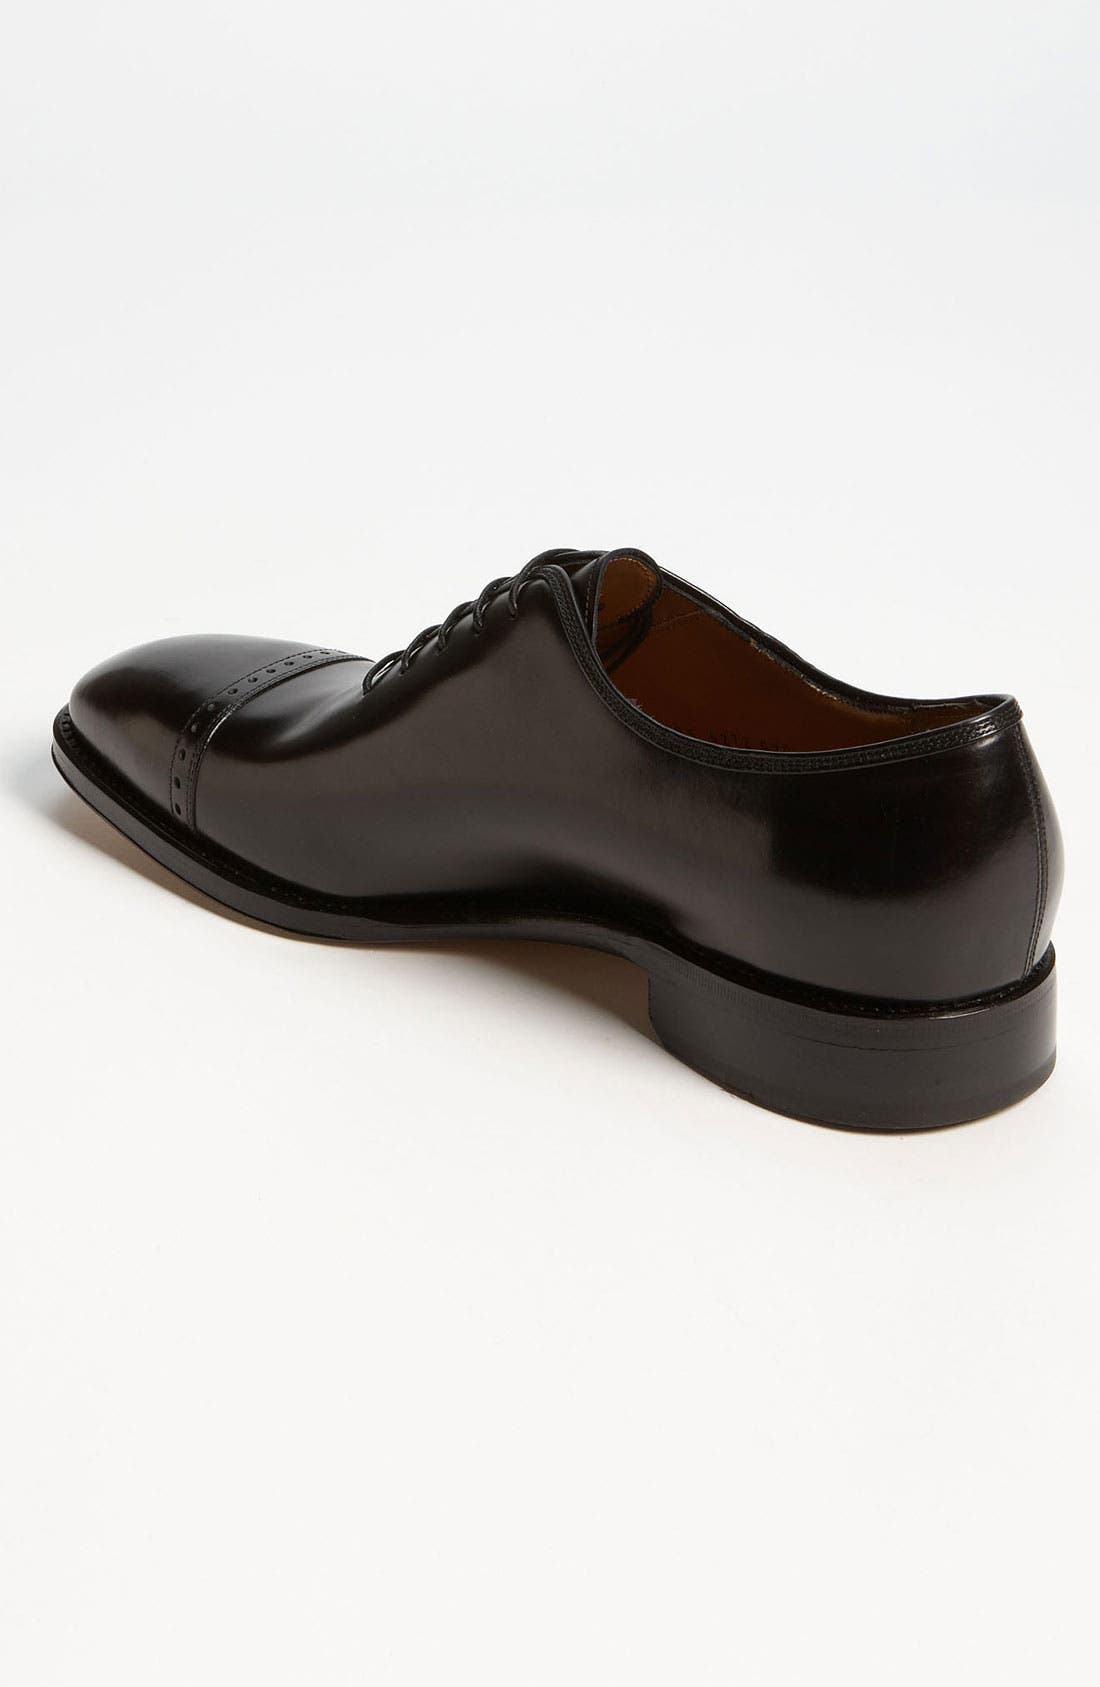 Alternate Image 2  - Salvatore Ferragamo 'Domino' Cap Toe Oxford (Online Only)